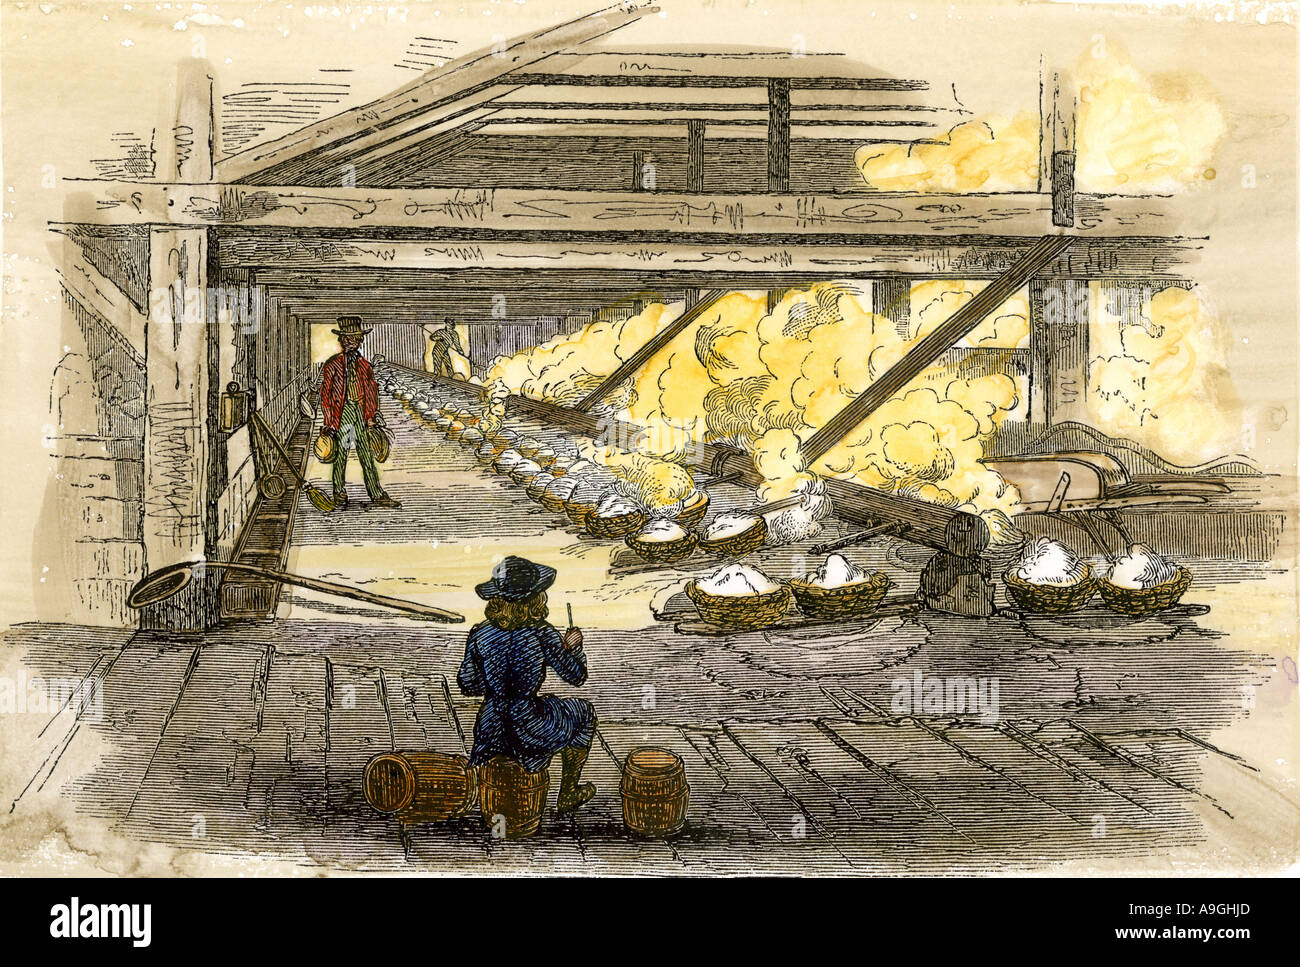 Interior view of the salt works in West Virginia 1850s. Hand-colored woodcut - Stock Image